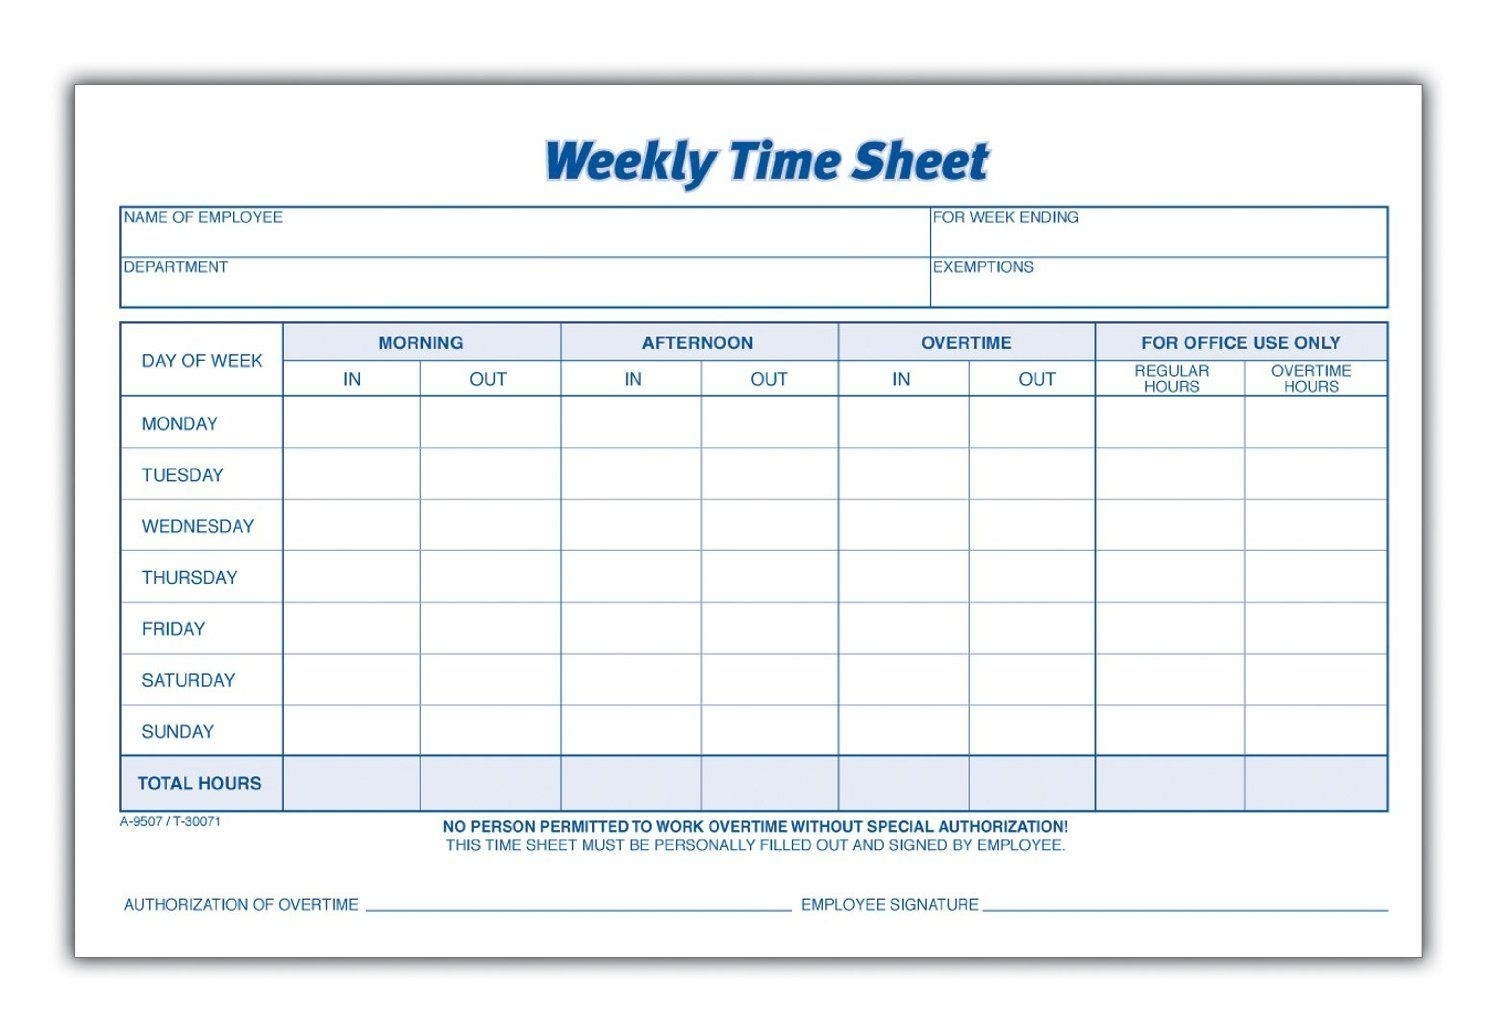 Pick Need A Pdf Of A Bi Weekly Work Schedule